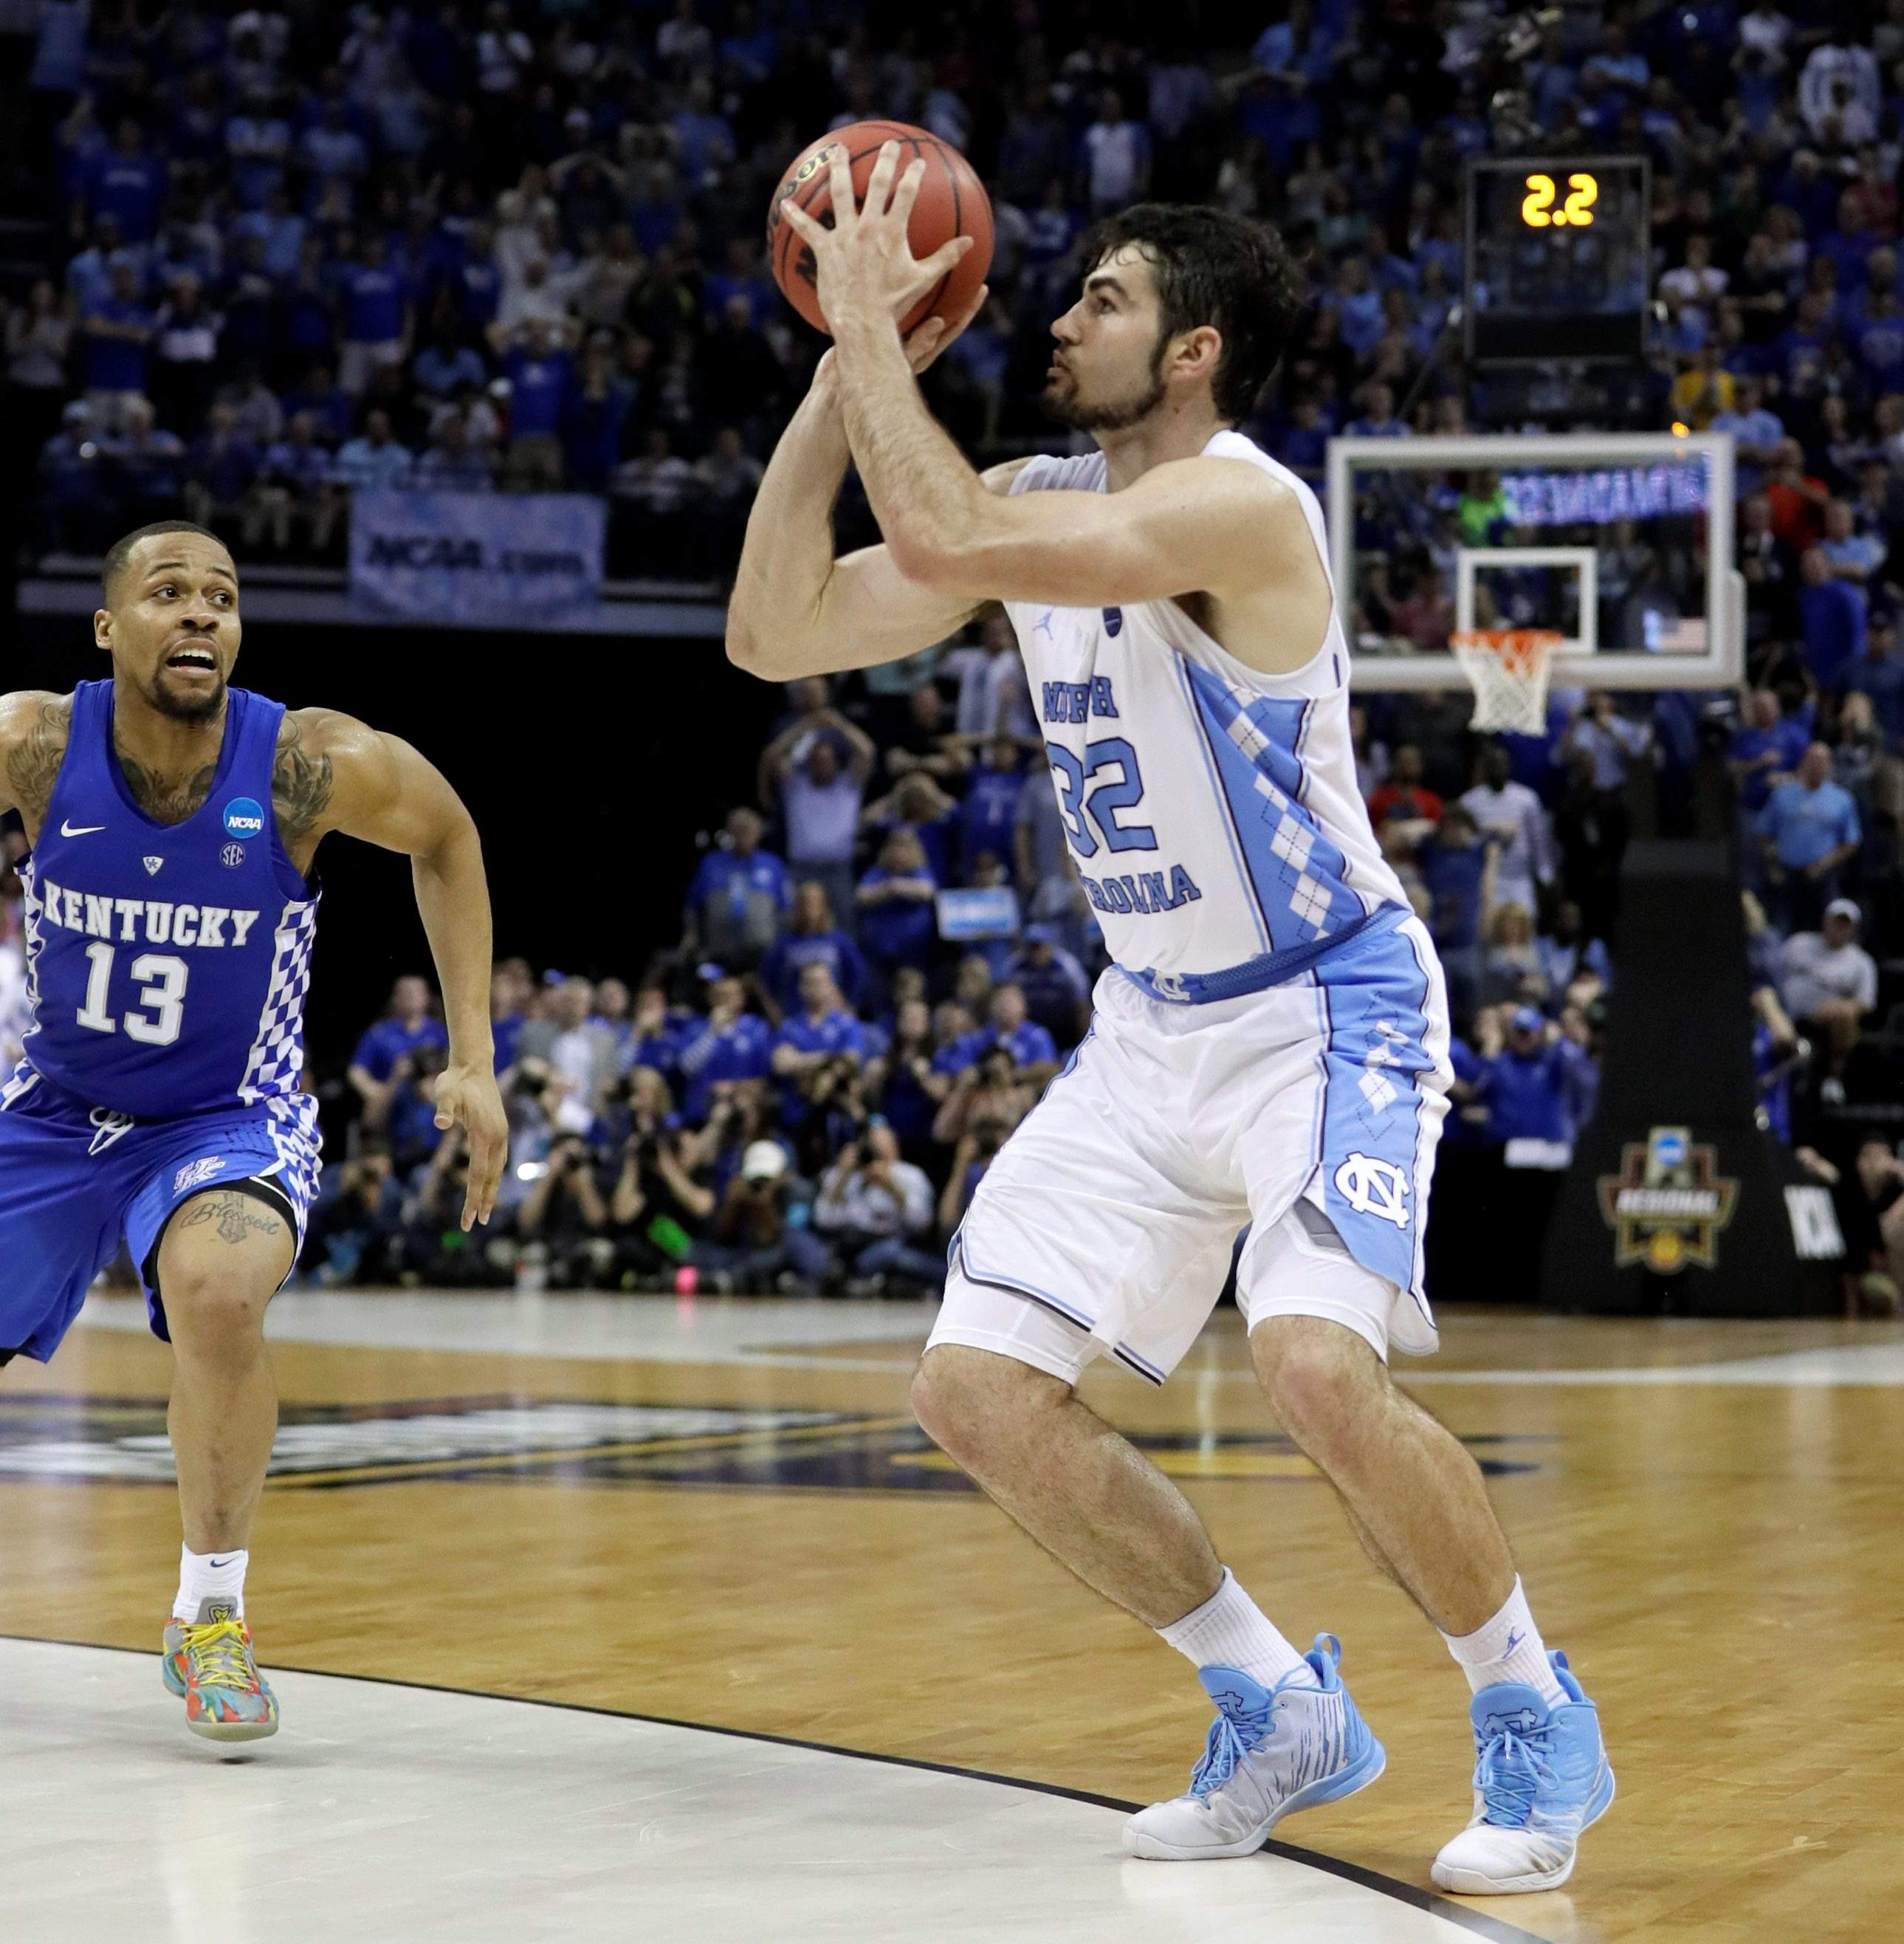 UNC's Luke Maye gets standing ovation at 8 am class